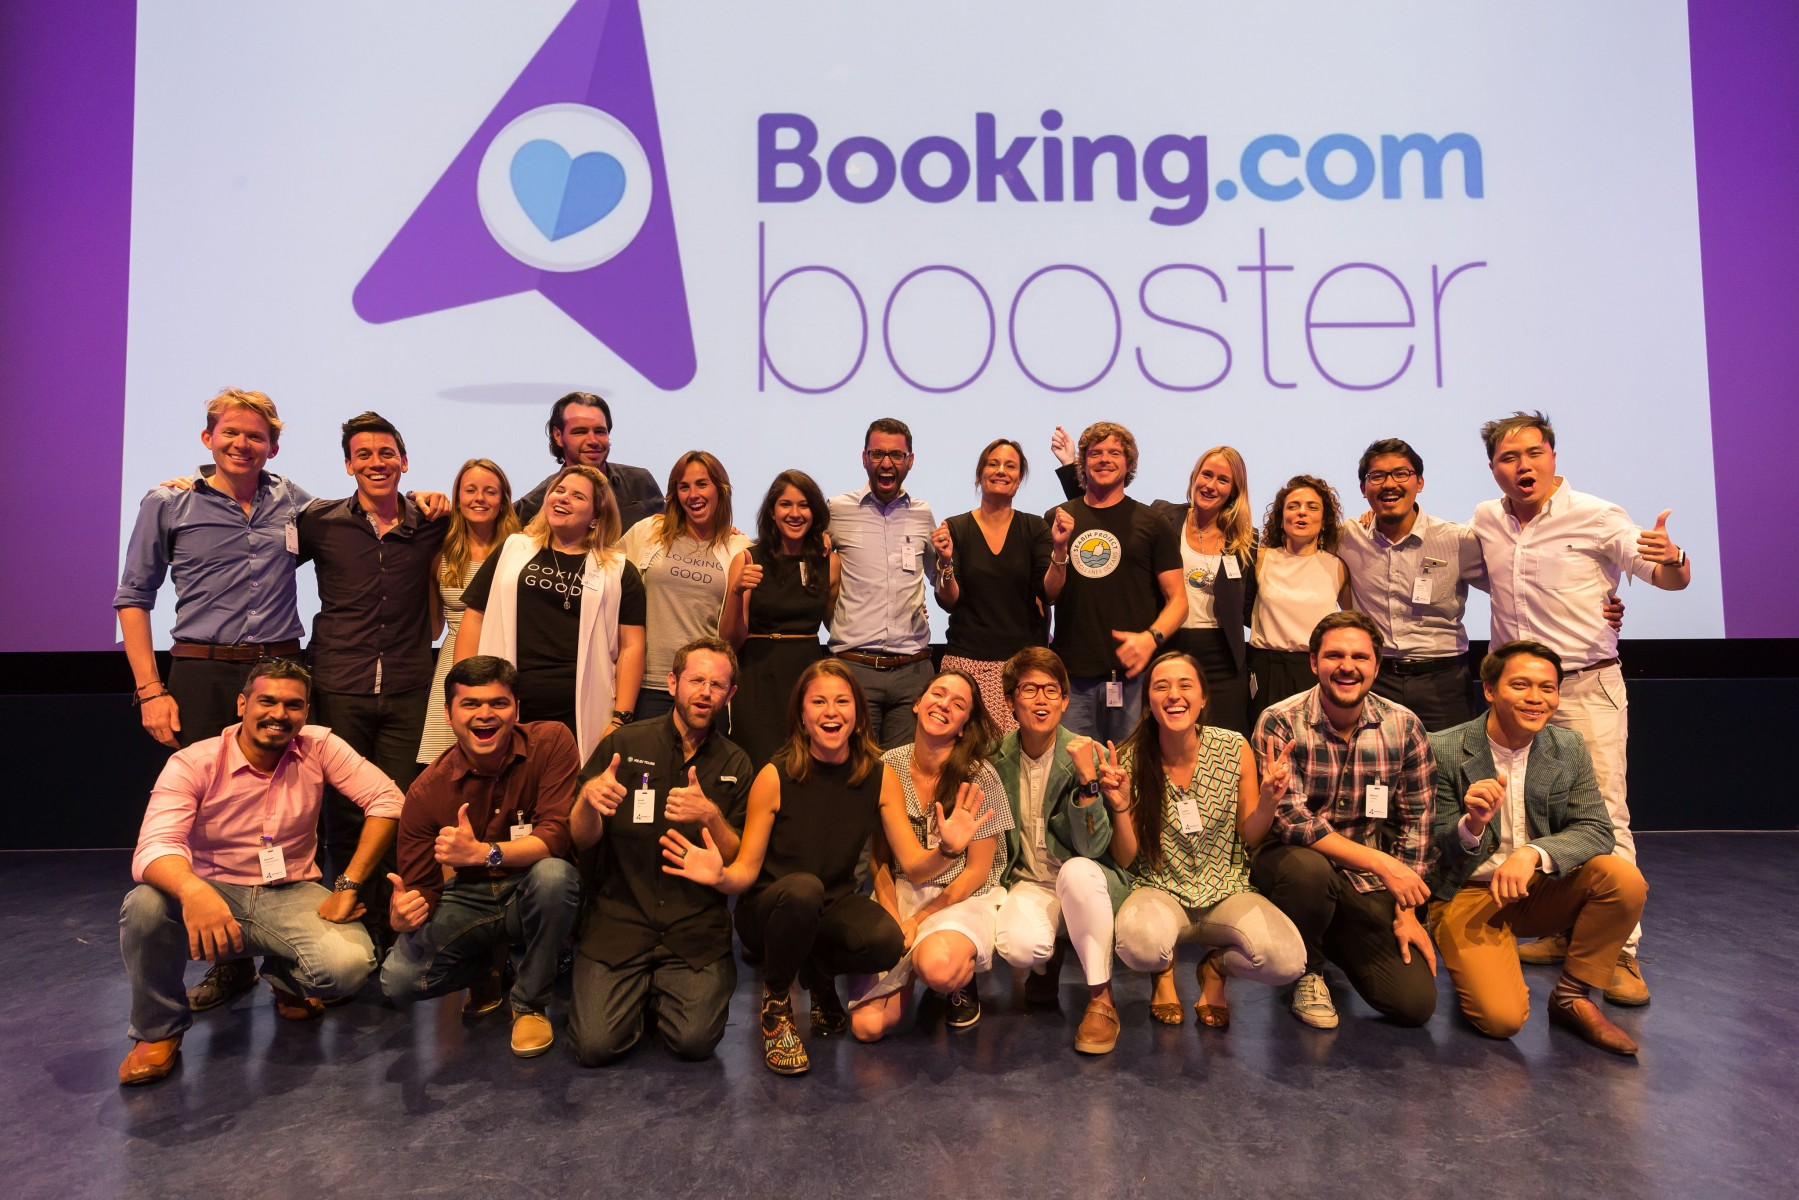 Booking.com Booster Startups with Gillian Tans at Final Pitch Event